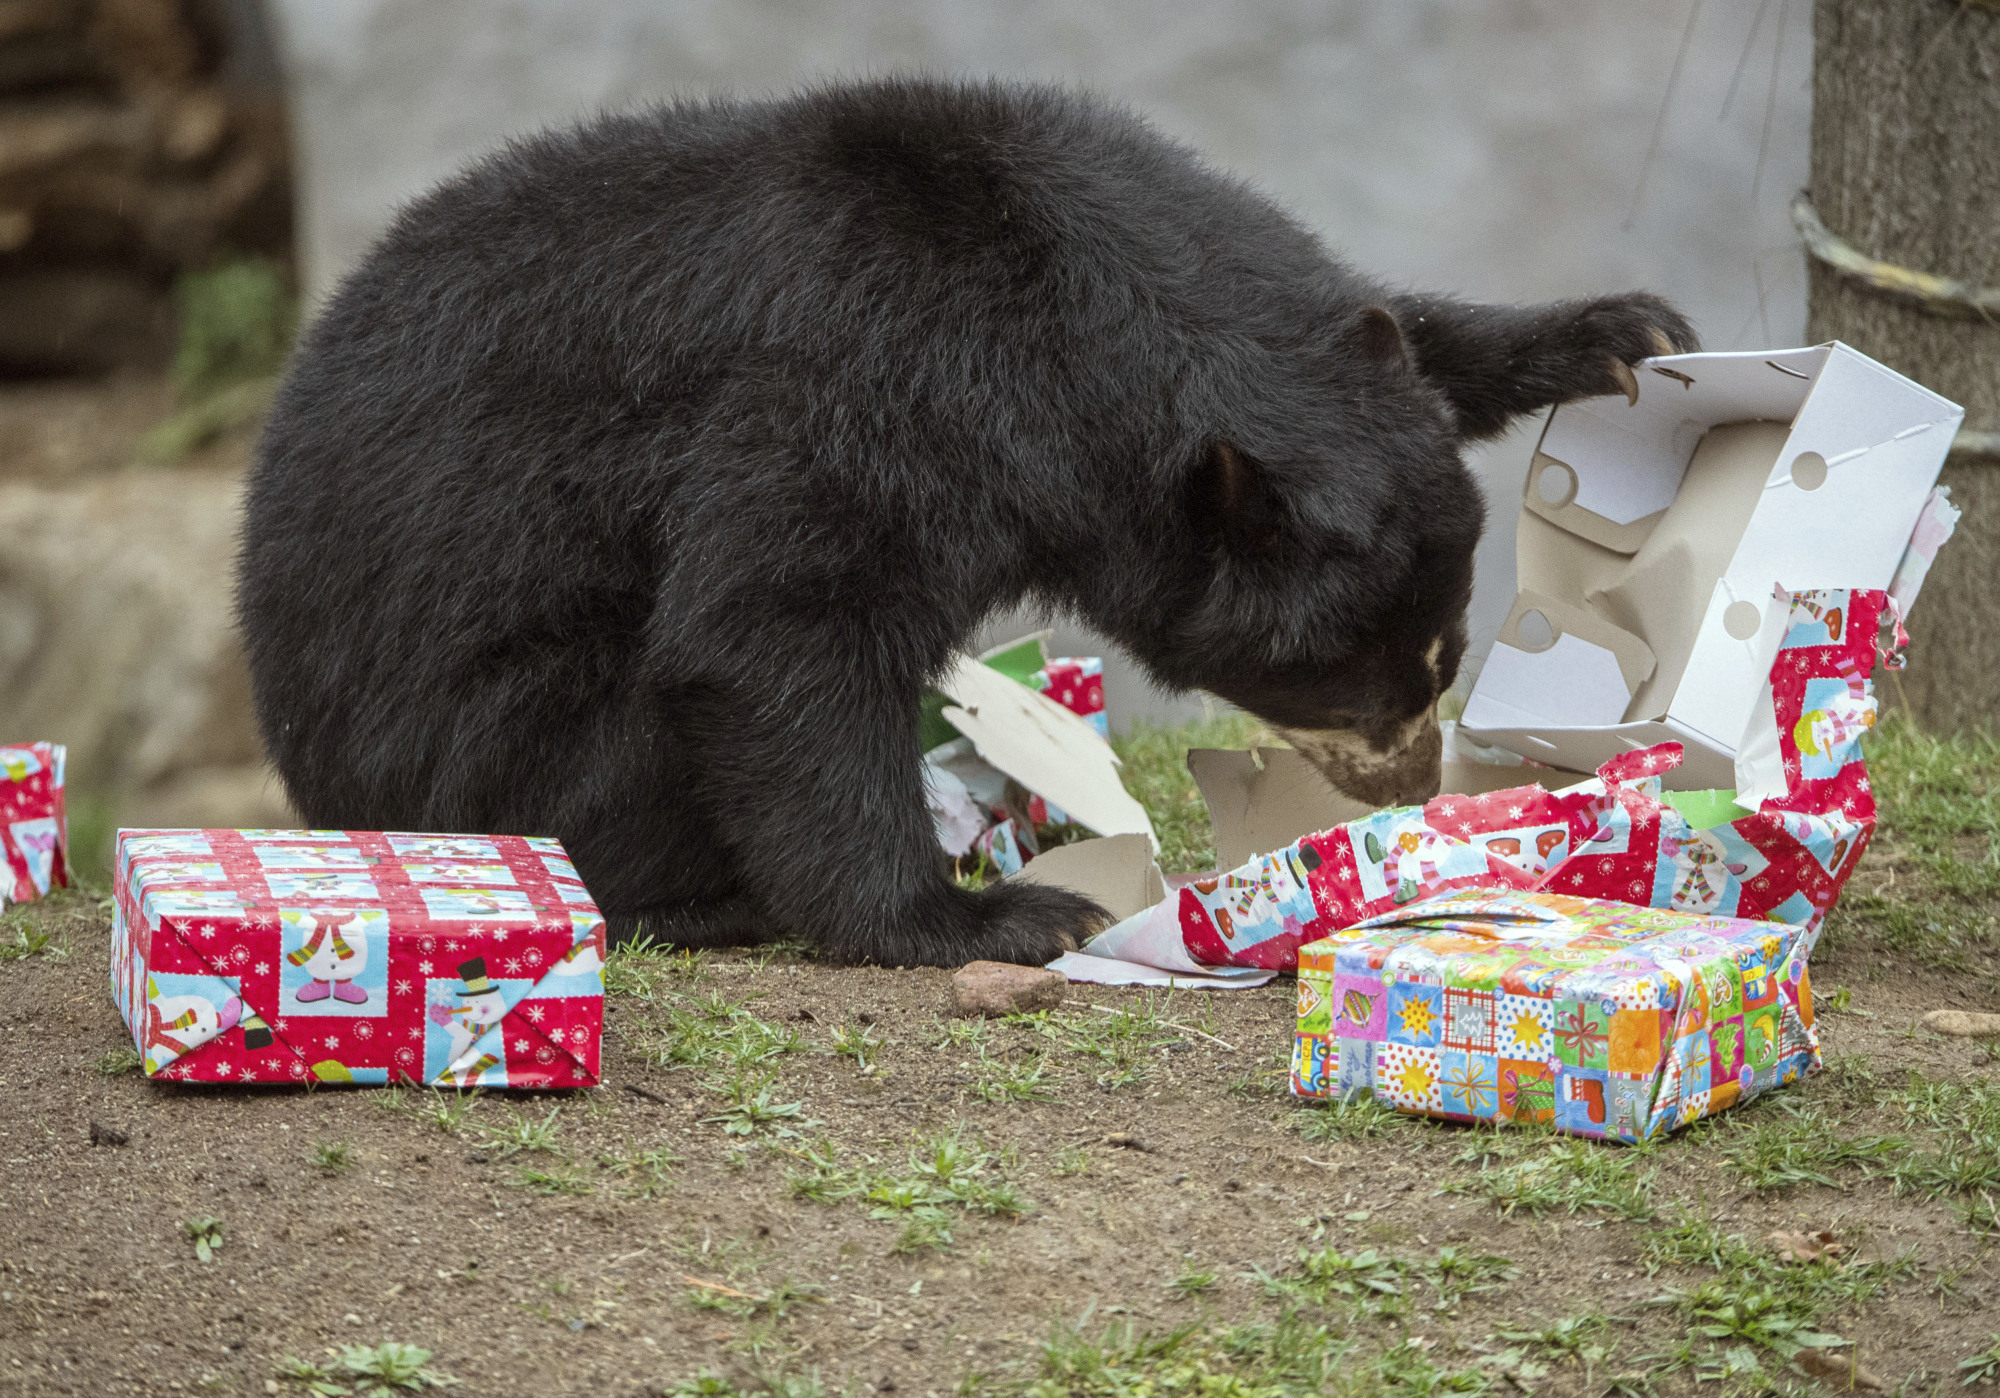 You have to give a present, not gift one. | ANDREAS ARNOLD/PICTURE-ALLIANCE/DPA/AP IMAGES